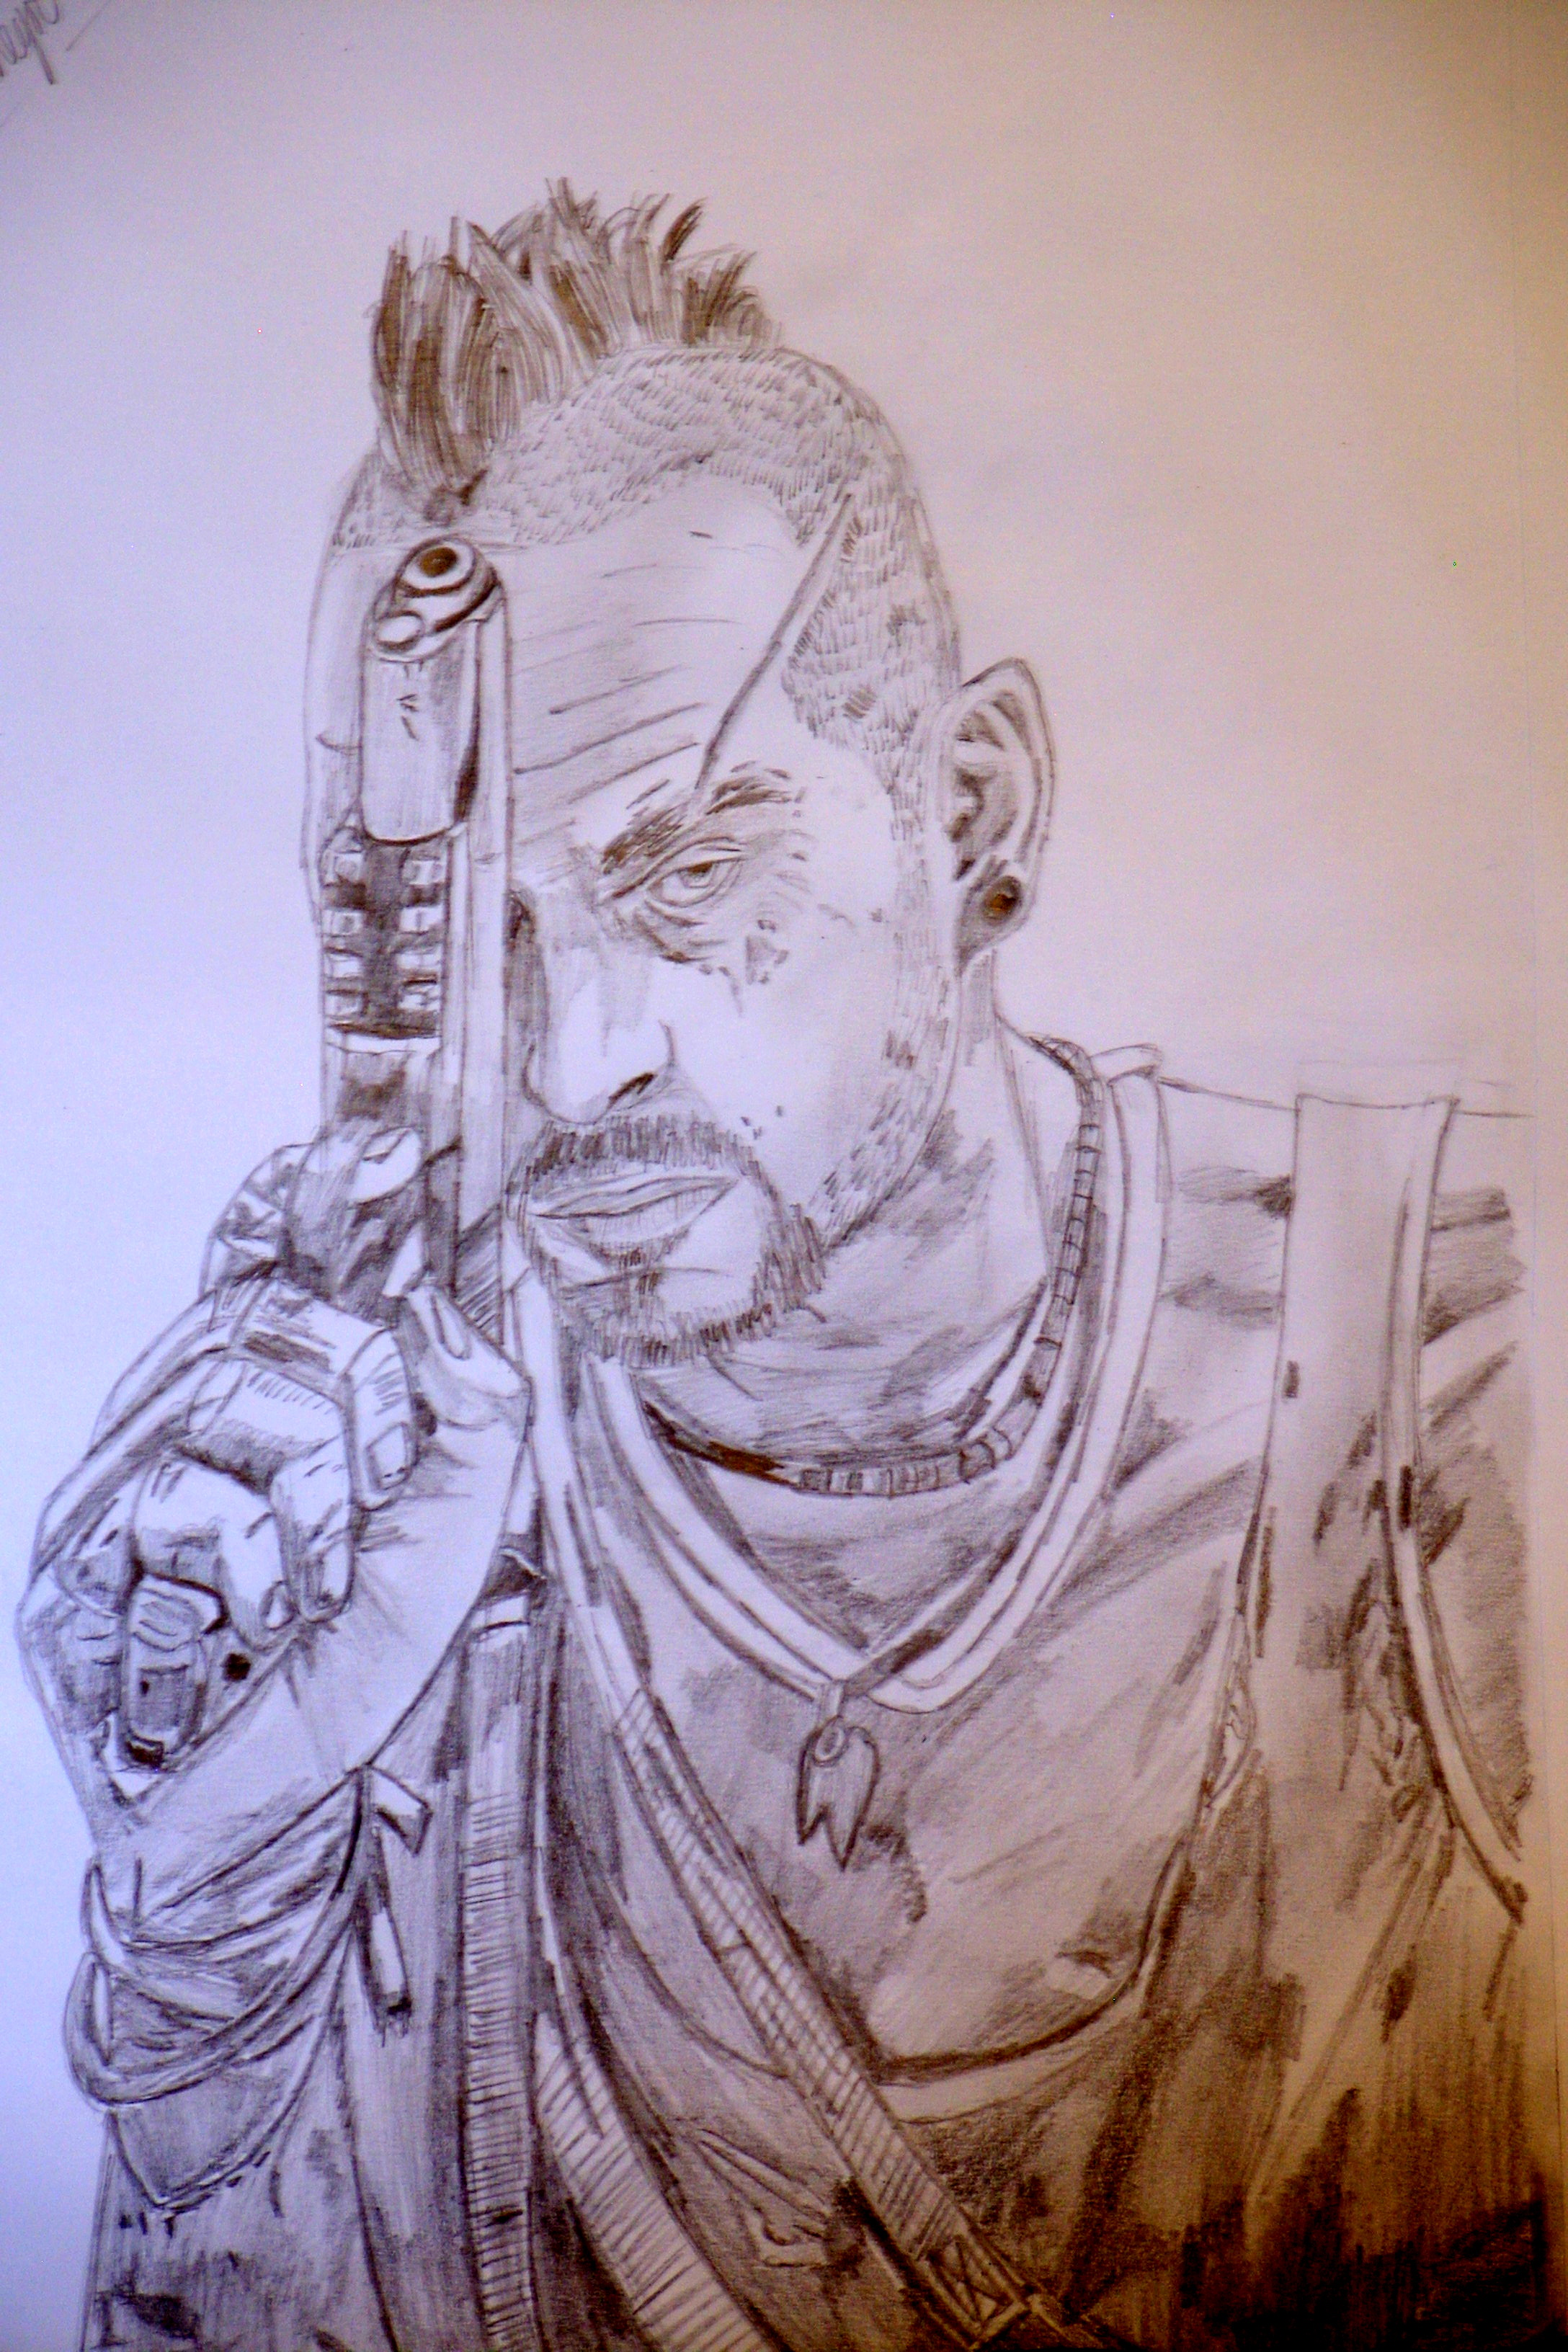 Vaas Montenegro - Far Cry 3 by nath2897 on DeviantArt